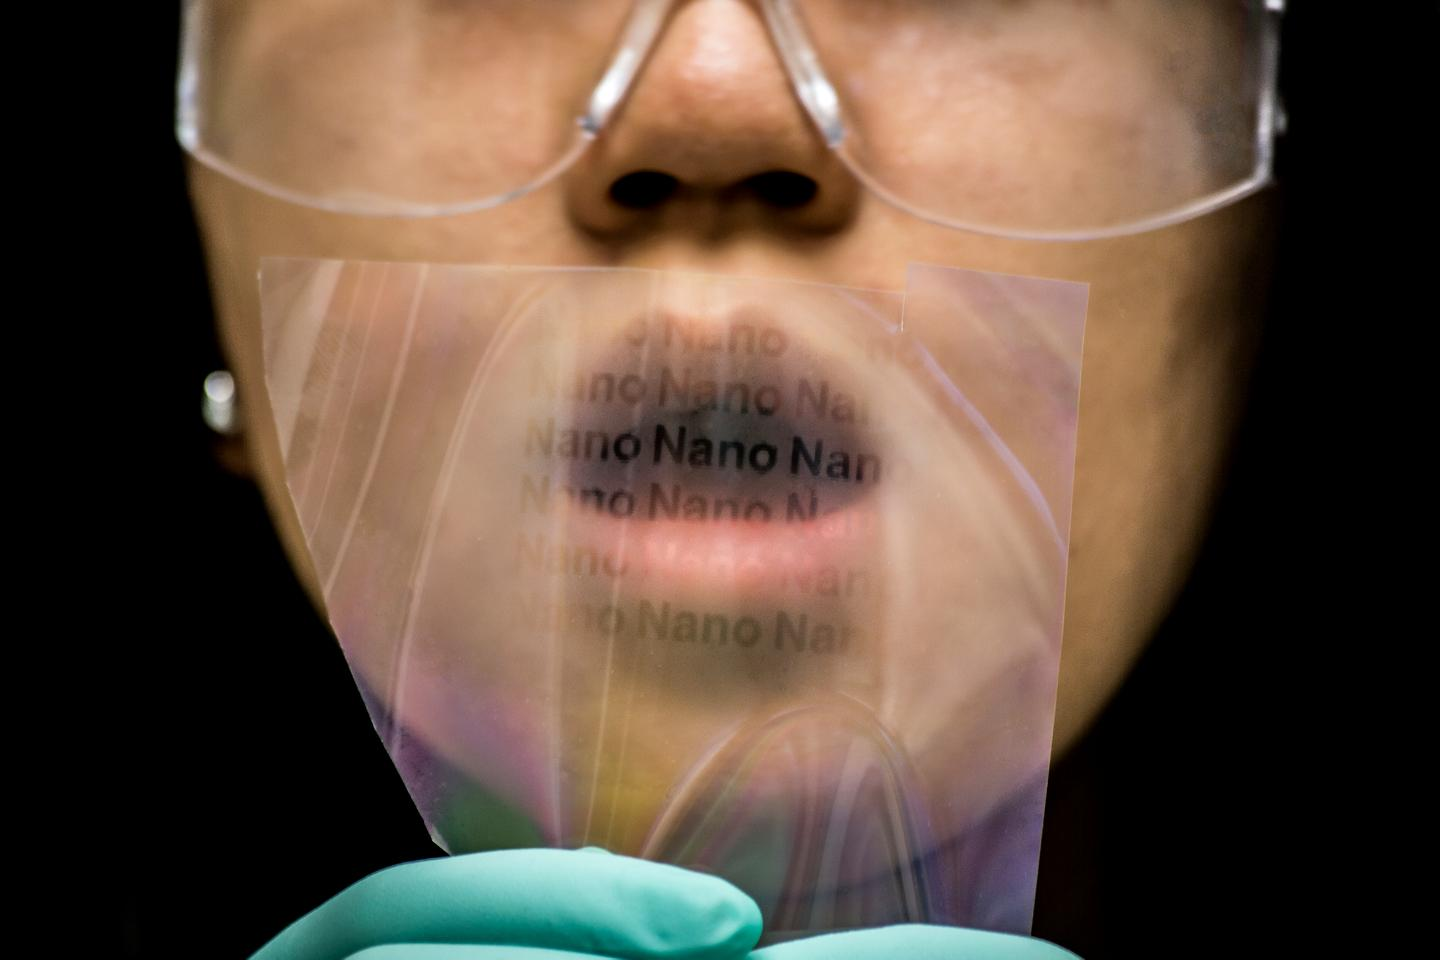 Breathing on this material deposited with nanopillars reveals a hidden message